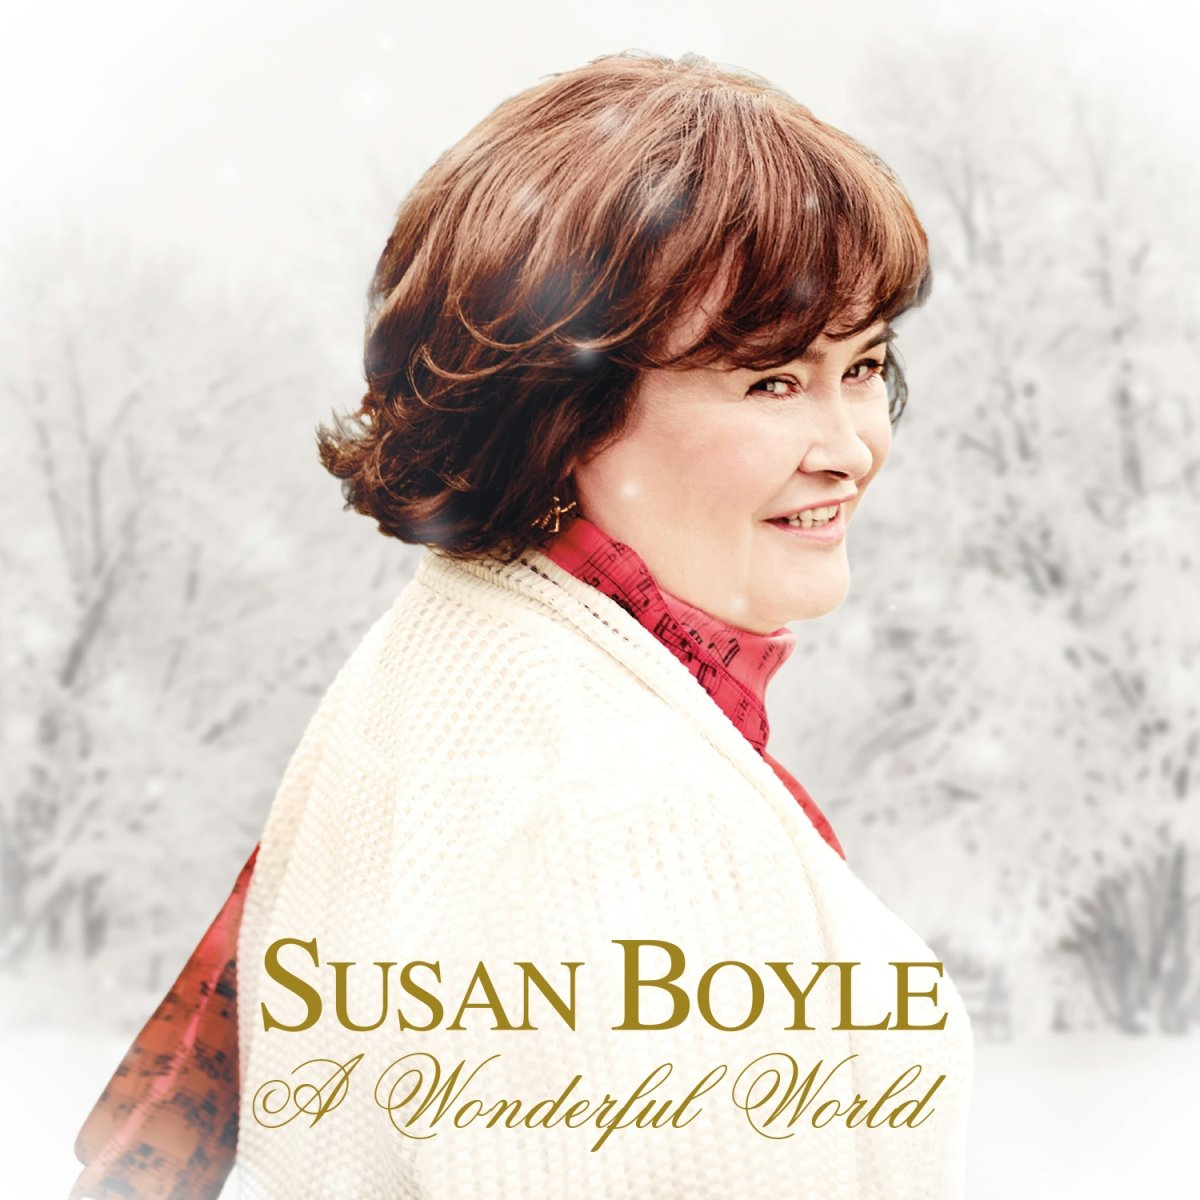 Susan Boyle - A Wonderful World - Amazon.com Music